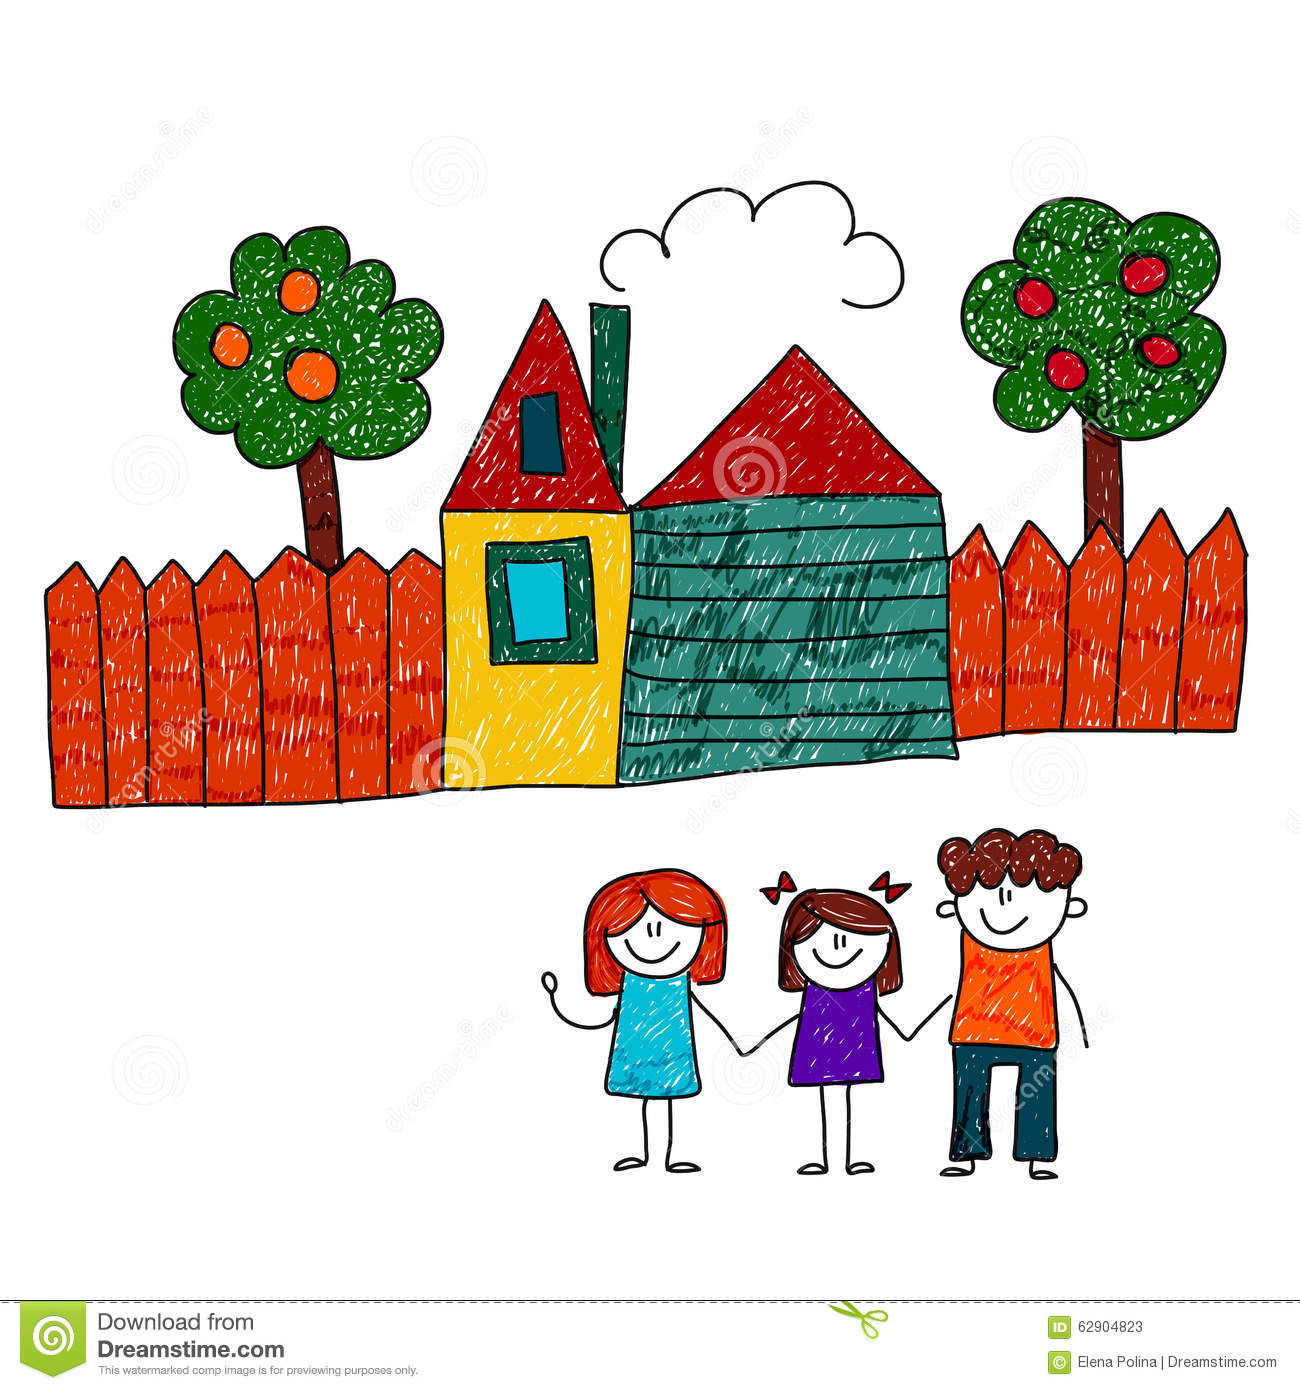 Garden drawing for kids - Garden Drawing Pictures For Kids Magielinfo